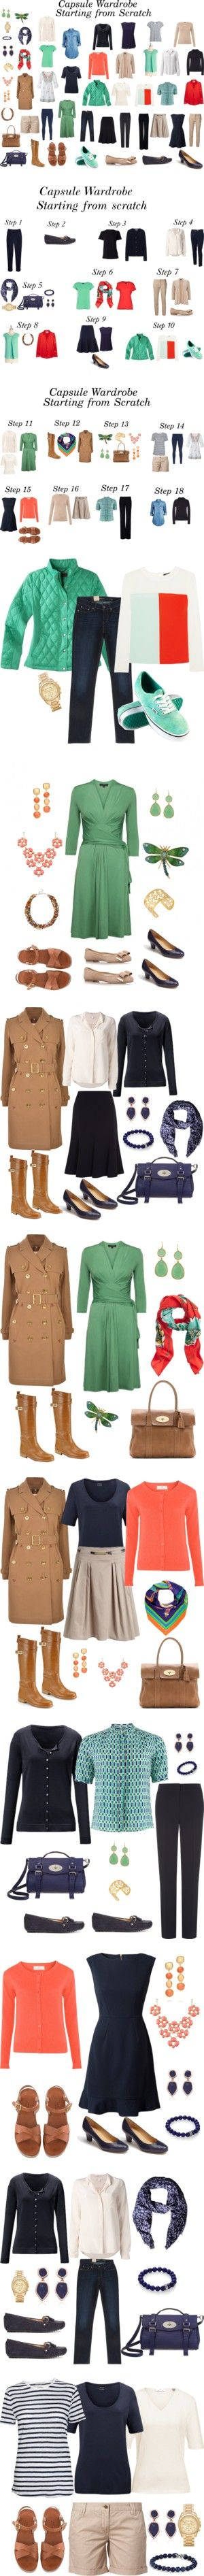 Capsule Wardrobe - Starting from Scratch by linnshem on Polyvore featuring Hobbs, Hahn, Levi's, Warehouse, Jigsaw, Wallis, The Row, Raoul, Freda and Lipsy